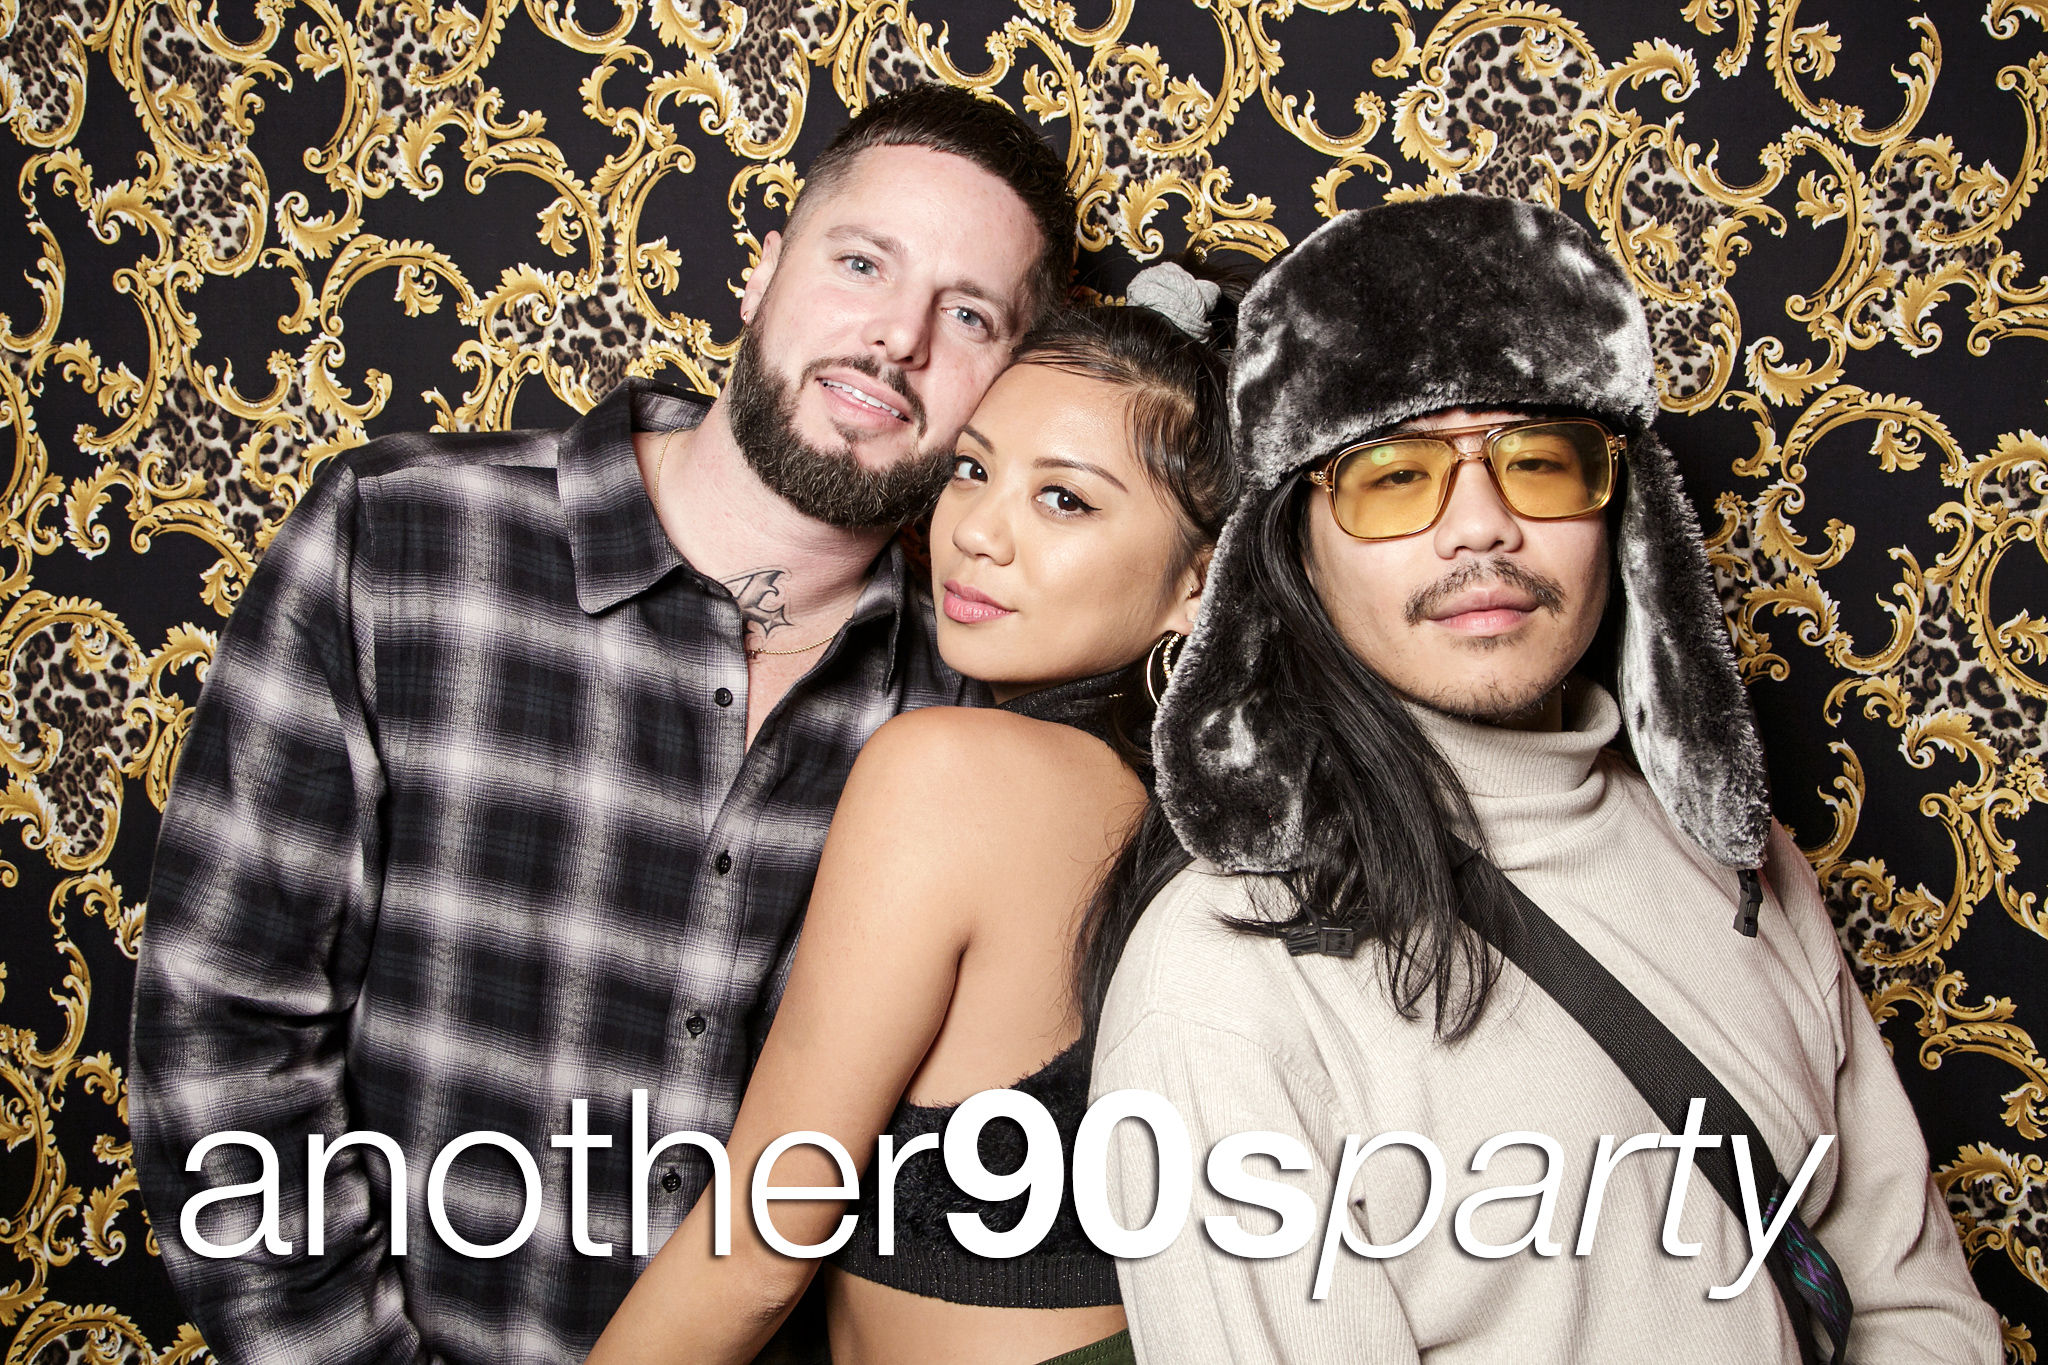 glitterguts portrait booth photos from another 90s party at beauty bar chicago, november 2019